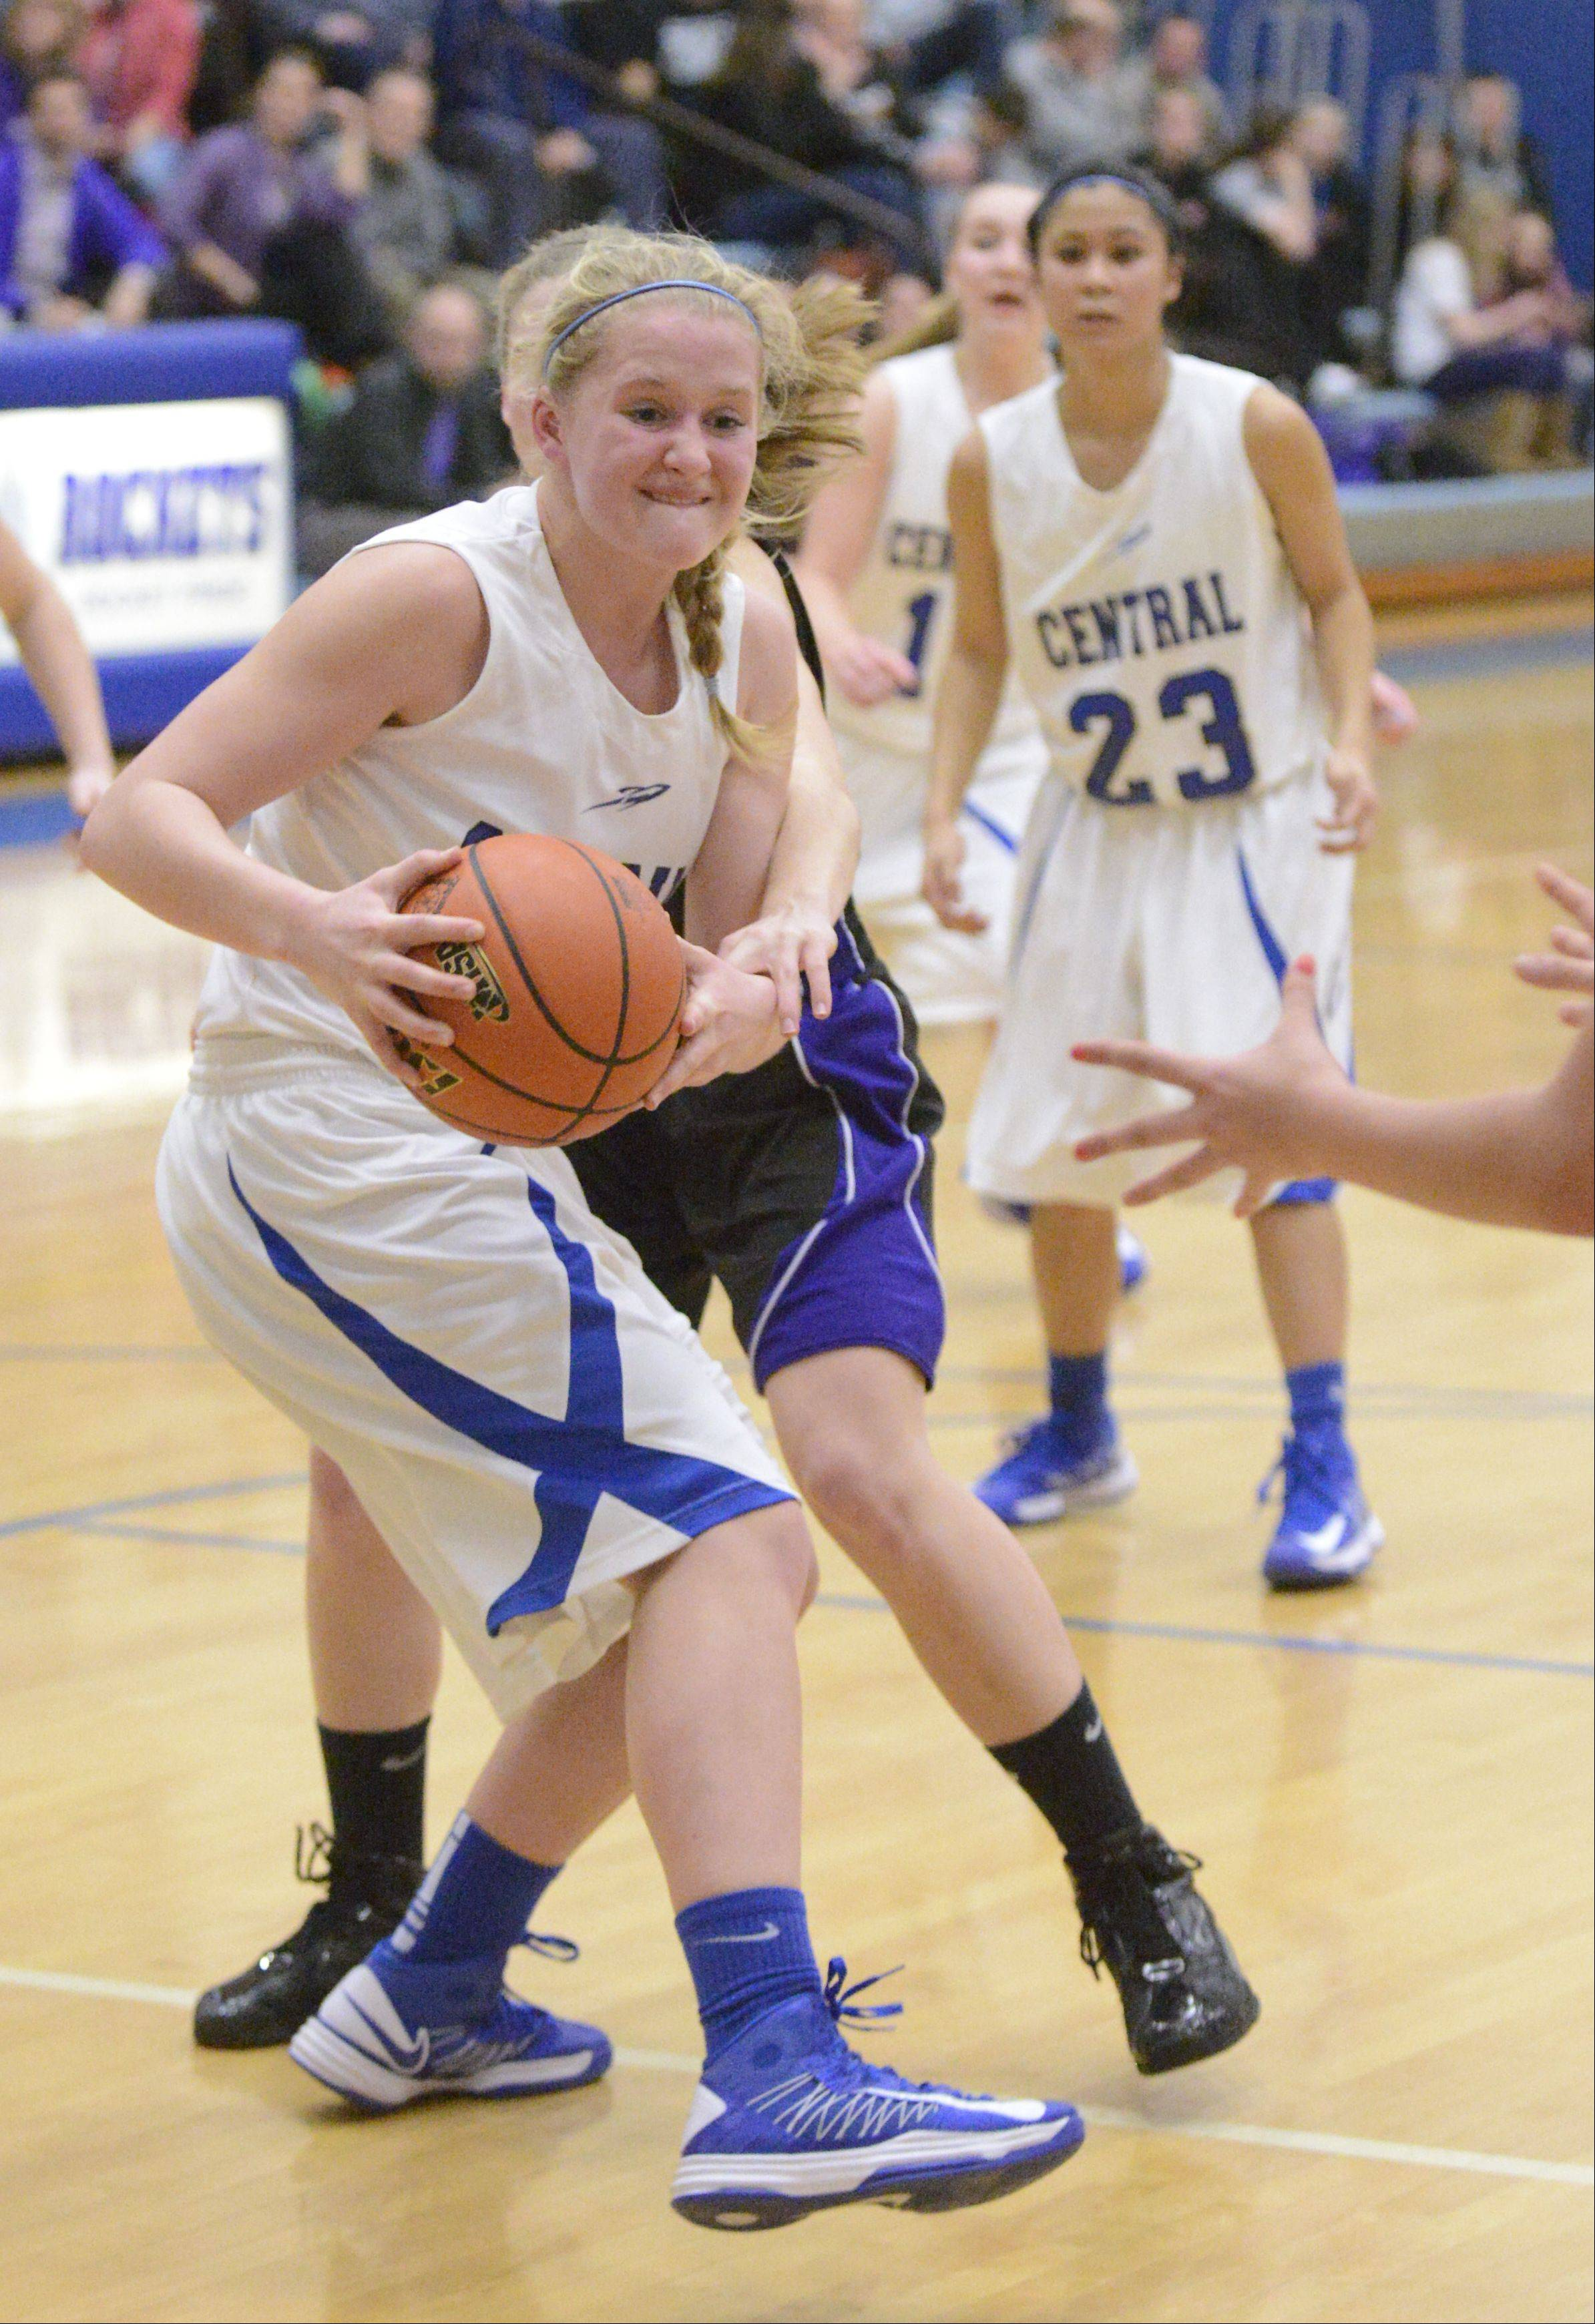 Images from the Burlington Central vs. Hampshire girls basketball game Wednesday, February 13, 2013.